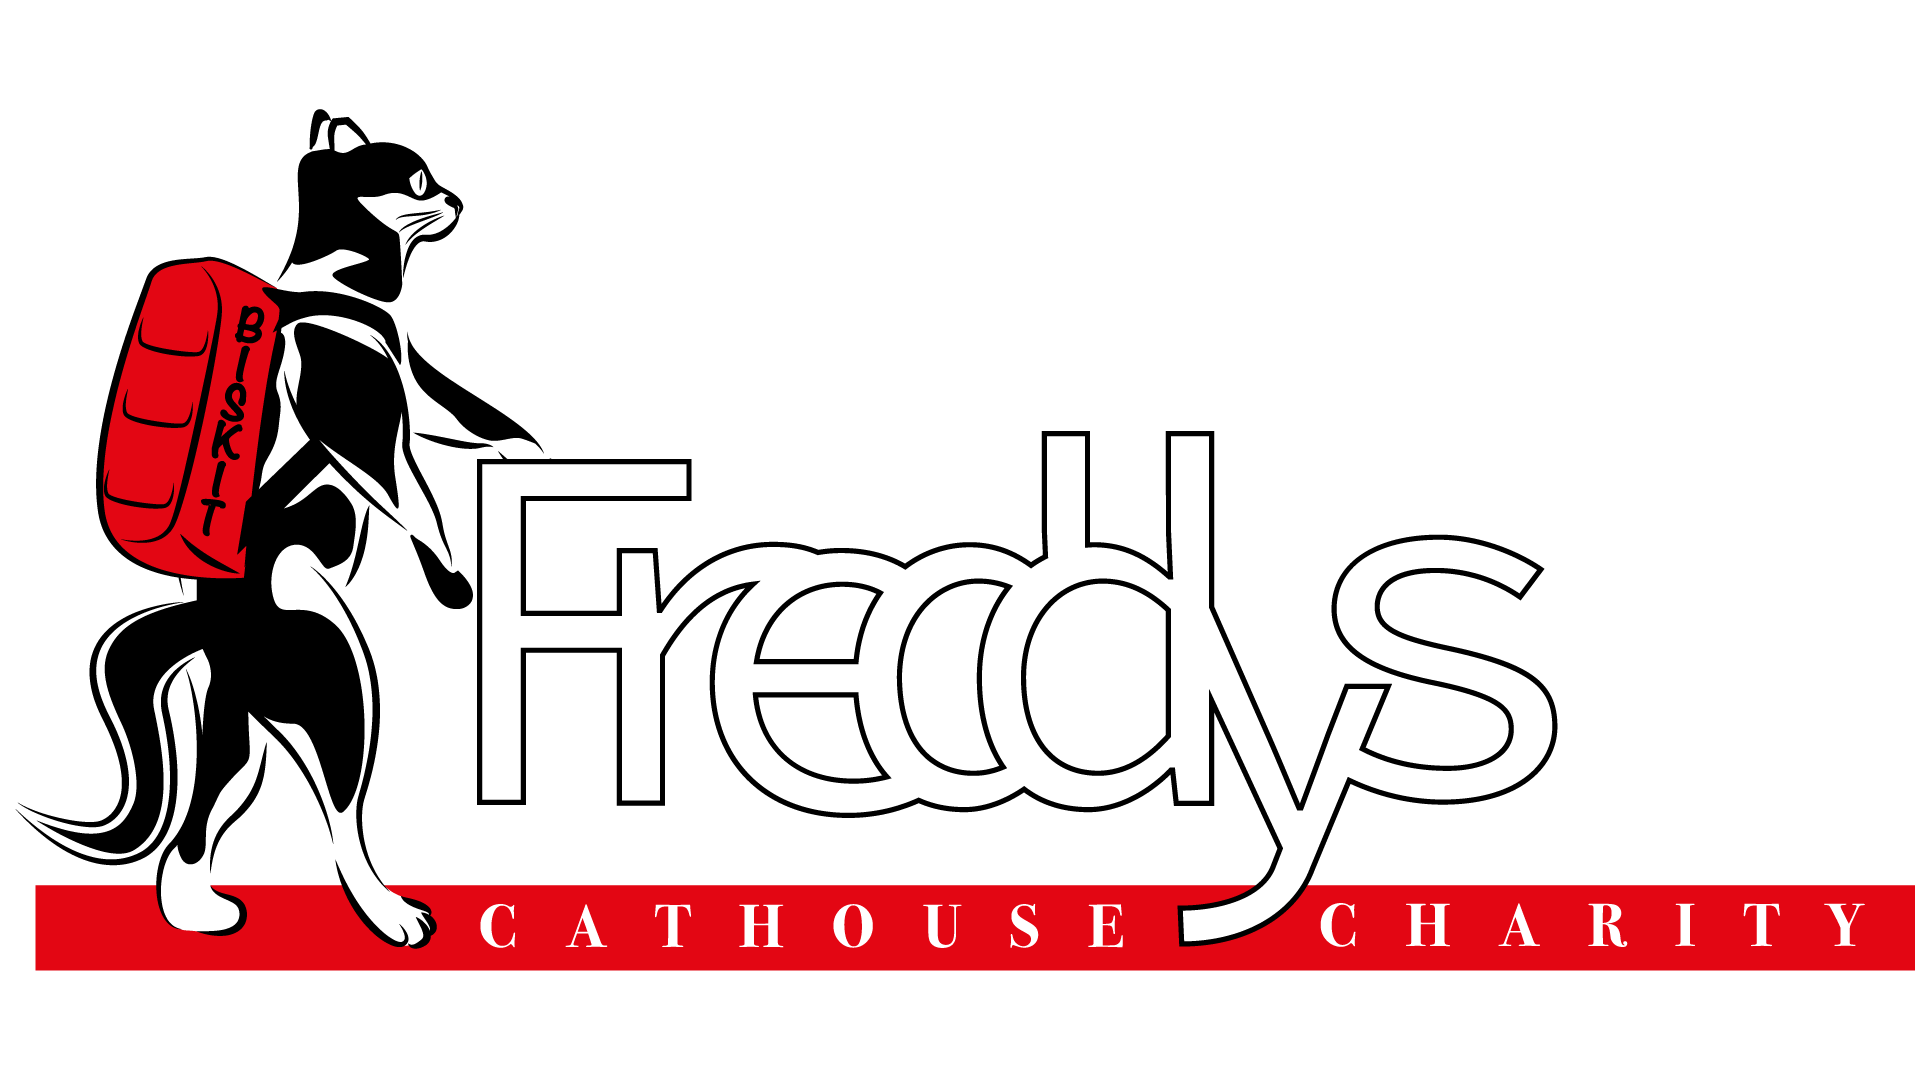 Freddys Cathouse Charity